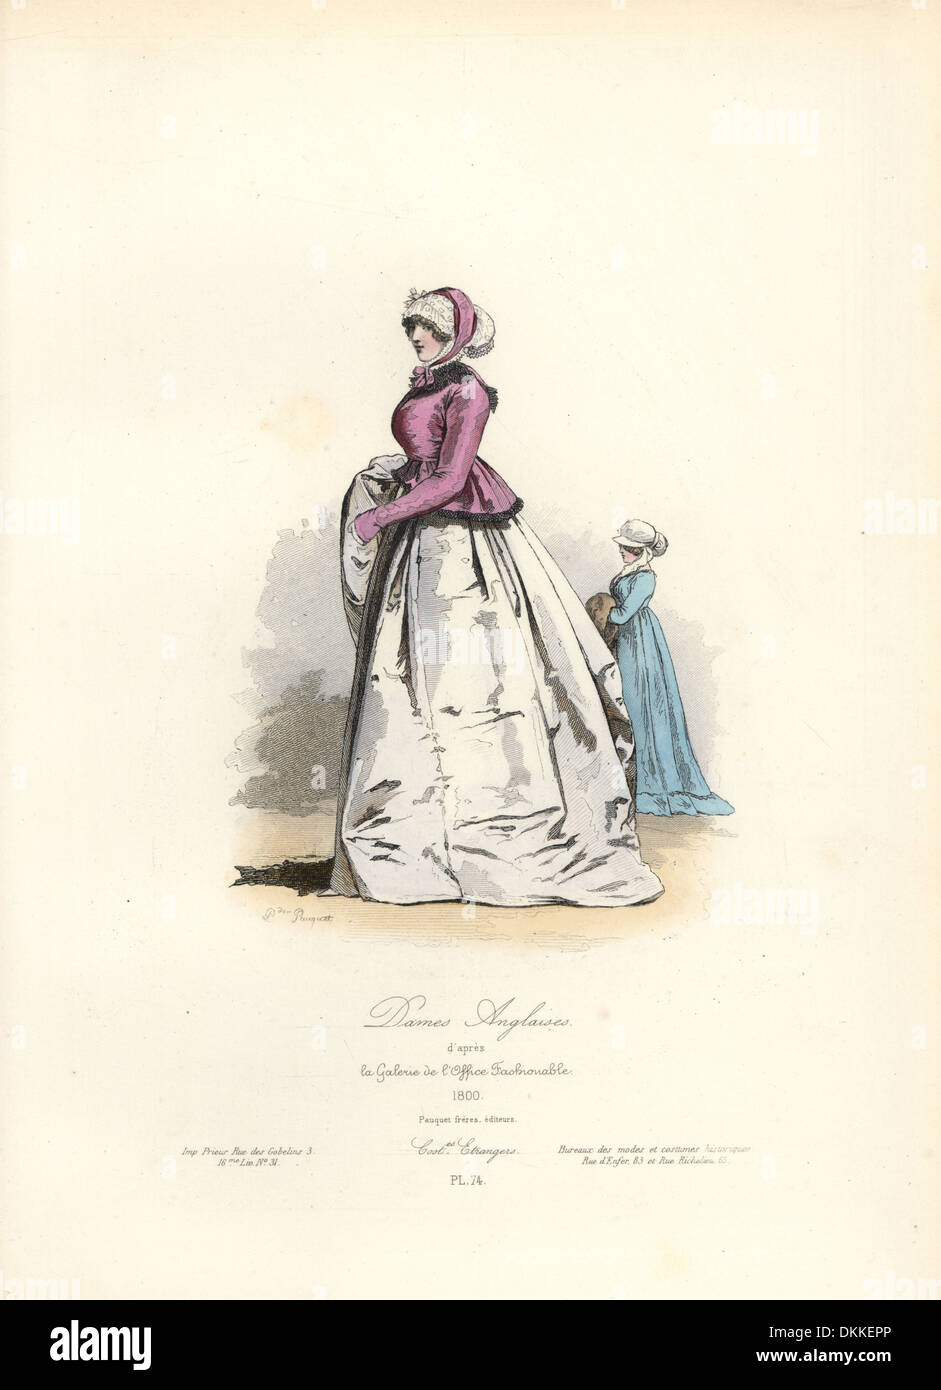 English women, 1800, from the Galerie de l'office fashionable. - Stock Image